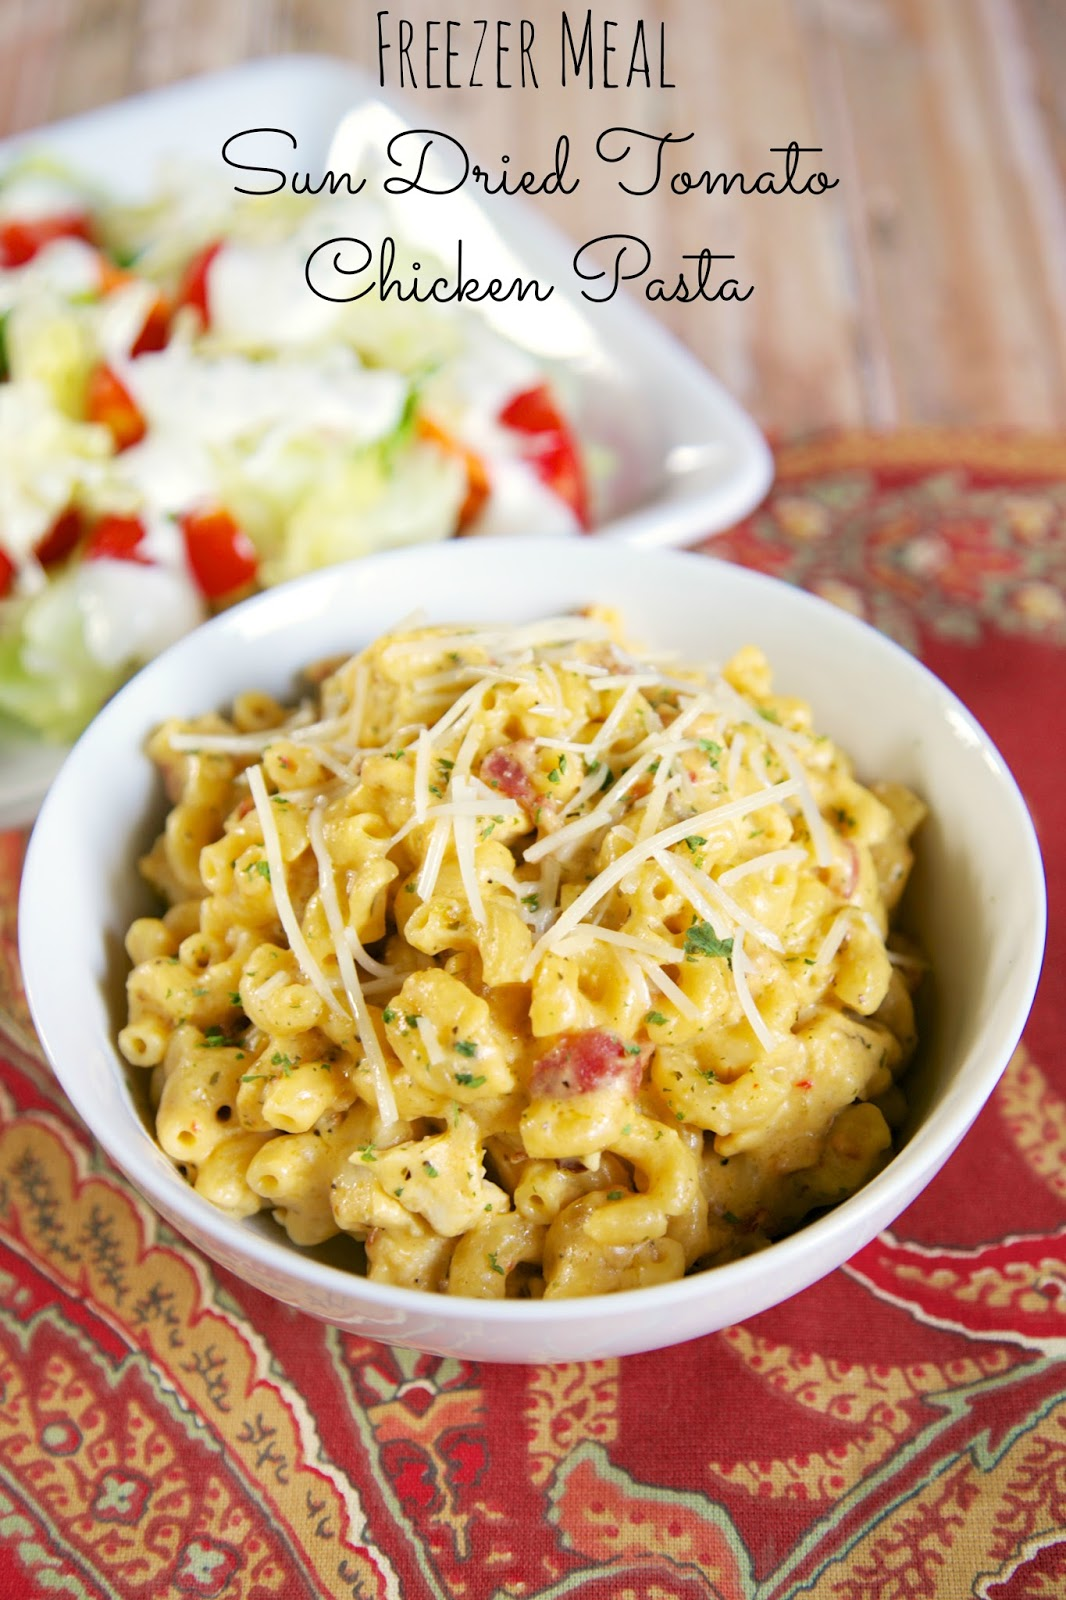 {Freezer Meal} Sun Dried Tomato Chicken Pasta - crazy delicious!!! Everyone cleaned their plate and asked for seconds!!! Pasta, chicken, sun dried tomato seasoning, garlic seasoning, dried mustard, cheddar cheese soup, evaporated milk, milk, cheddar cheese, mozzarella, and bacon. Can cook frozen in the slow cooker. We make this at least once a month! #freezermeal #pasta #slowcooker #chicken